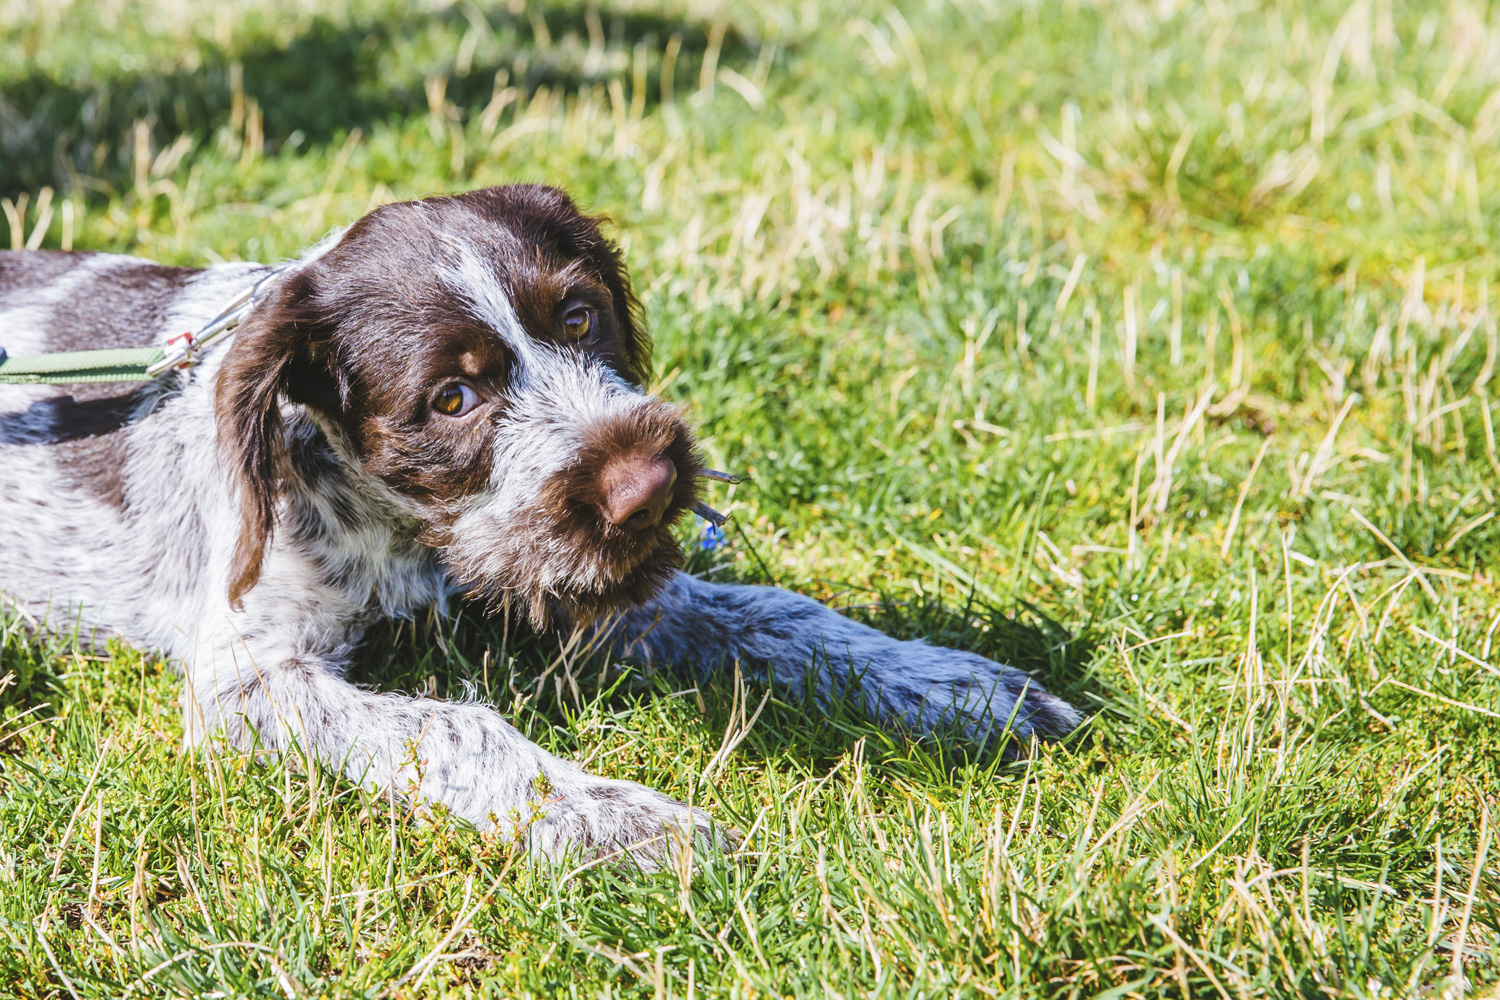 I think I just found my future breed of pup to get. ANYWAYS! Meet this sweet boy, Louie Clyde. He is a 5-month-old German Wirehaired Pointer and makes our hearts swell. Louie Clyde is a busy guy and will get fairly tall and active. His mom is a runner and the whole fam is also active so they are expected to have a lot of fun adventures together! Louie likes playing with other pups, his family, his stuffed bunny, a good tennis ball, walks to the lake, love and attention, and snuggling up on furniture after a hard day of playing. He dislikes car rides, boredom, and vacuums. The Seattle RUFFined Spotlight is a weekly profile of local pets living and loving life in the PNW. If you or someone you know has a pet you'd like featured, email us at hello@seattlerefined.com or tag #SeattleRUFFined and your furbaby could be the next spotlighted! (Image: Sunita Martini / Seattle Refined)